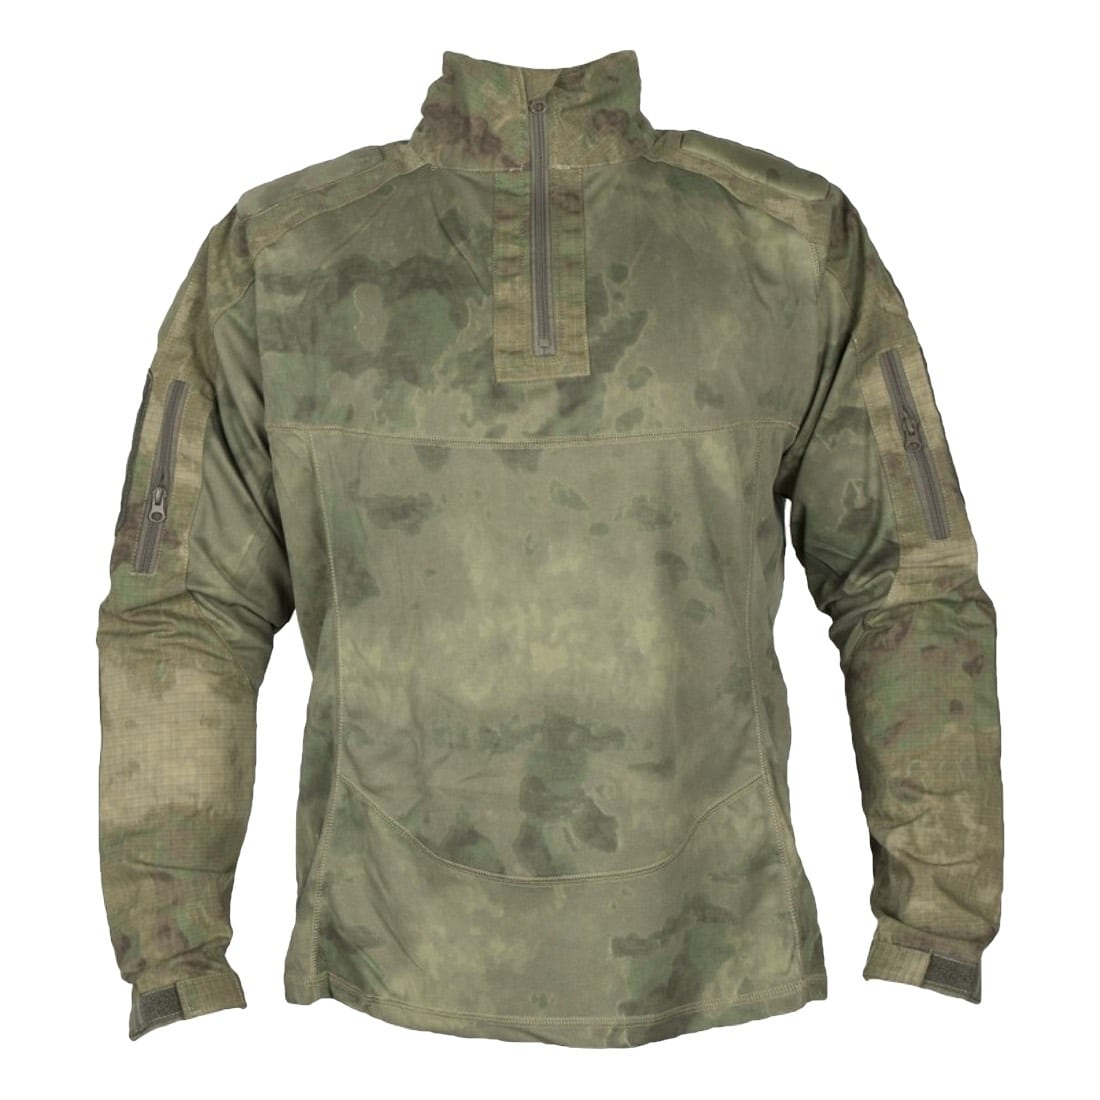 Spec ops Tactical Jersey 2.0 Forrest Green